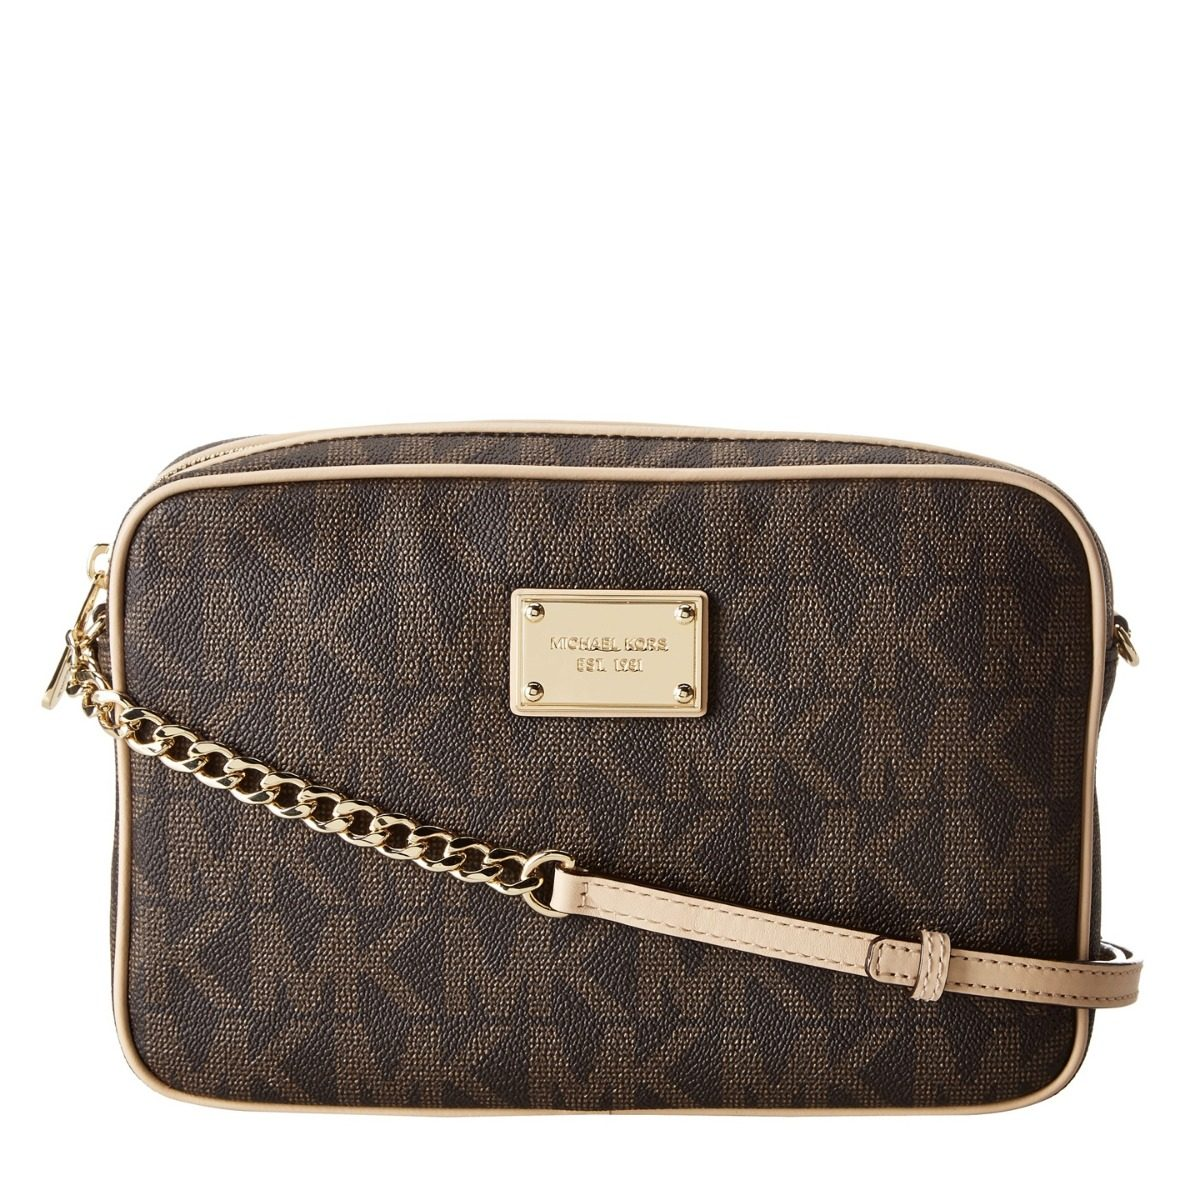 b566a5f23 Bolsa Michael Kors Jet Set Large Crossbody - Brown - R$ 1.350,00 em ...